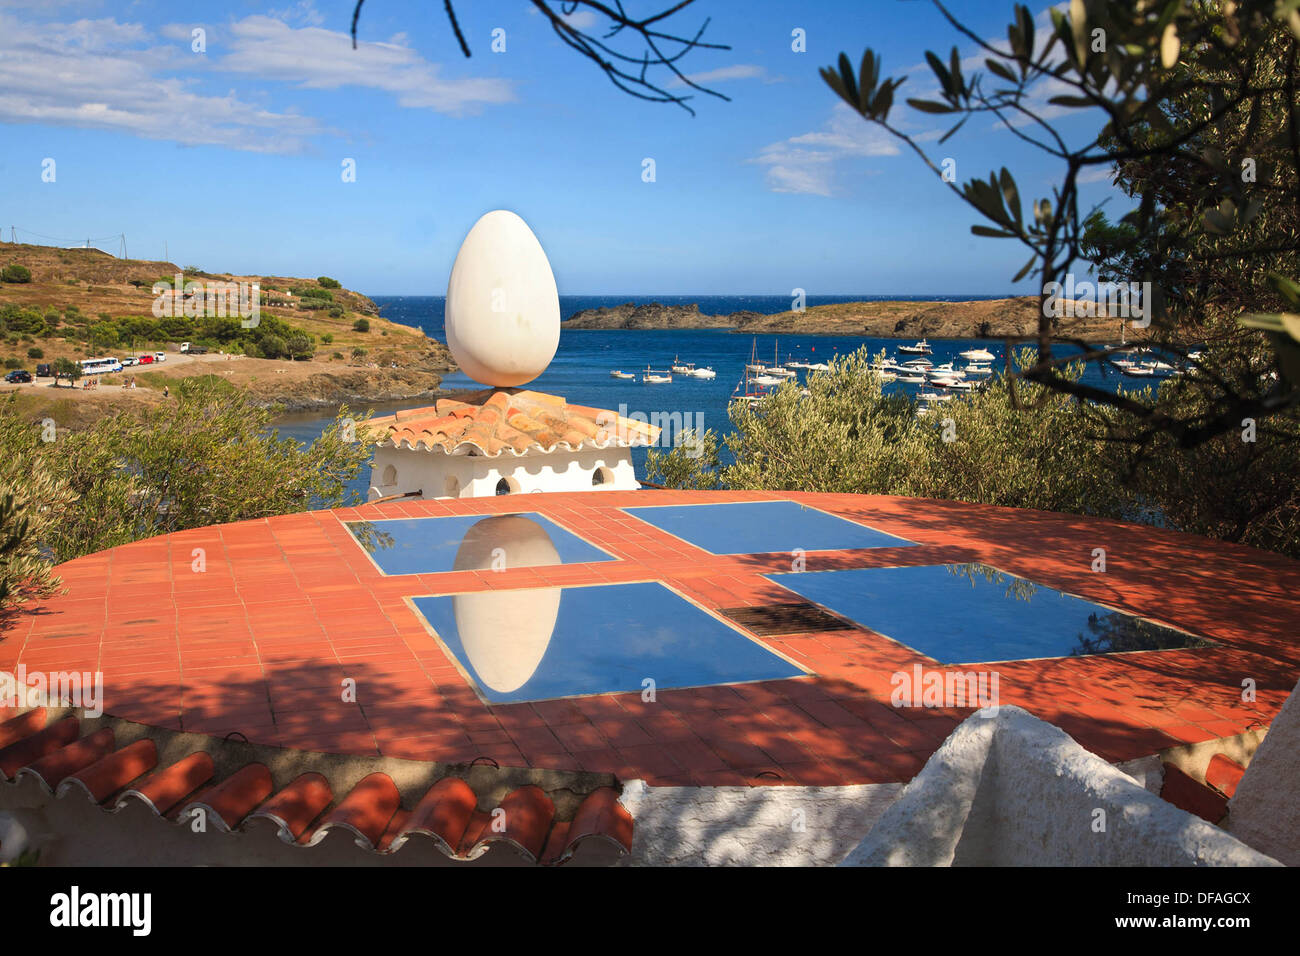 Cadaques Dali An Egg On The Roof Of Salvador Dali 39s House In Port Lligat